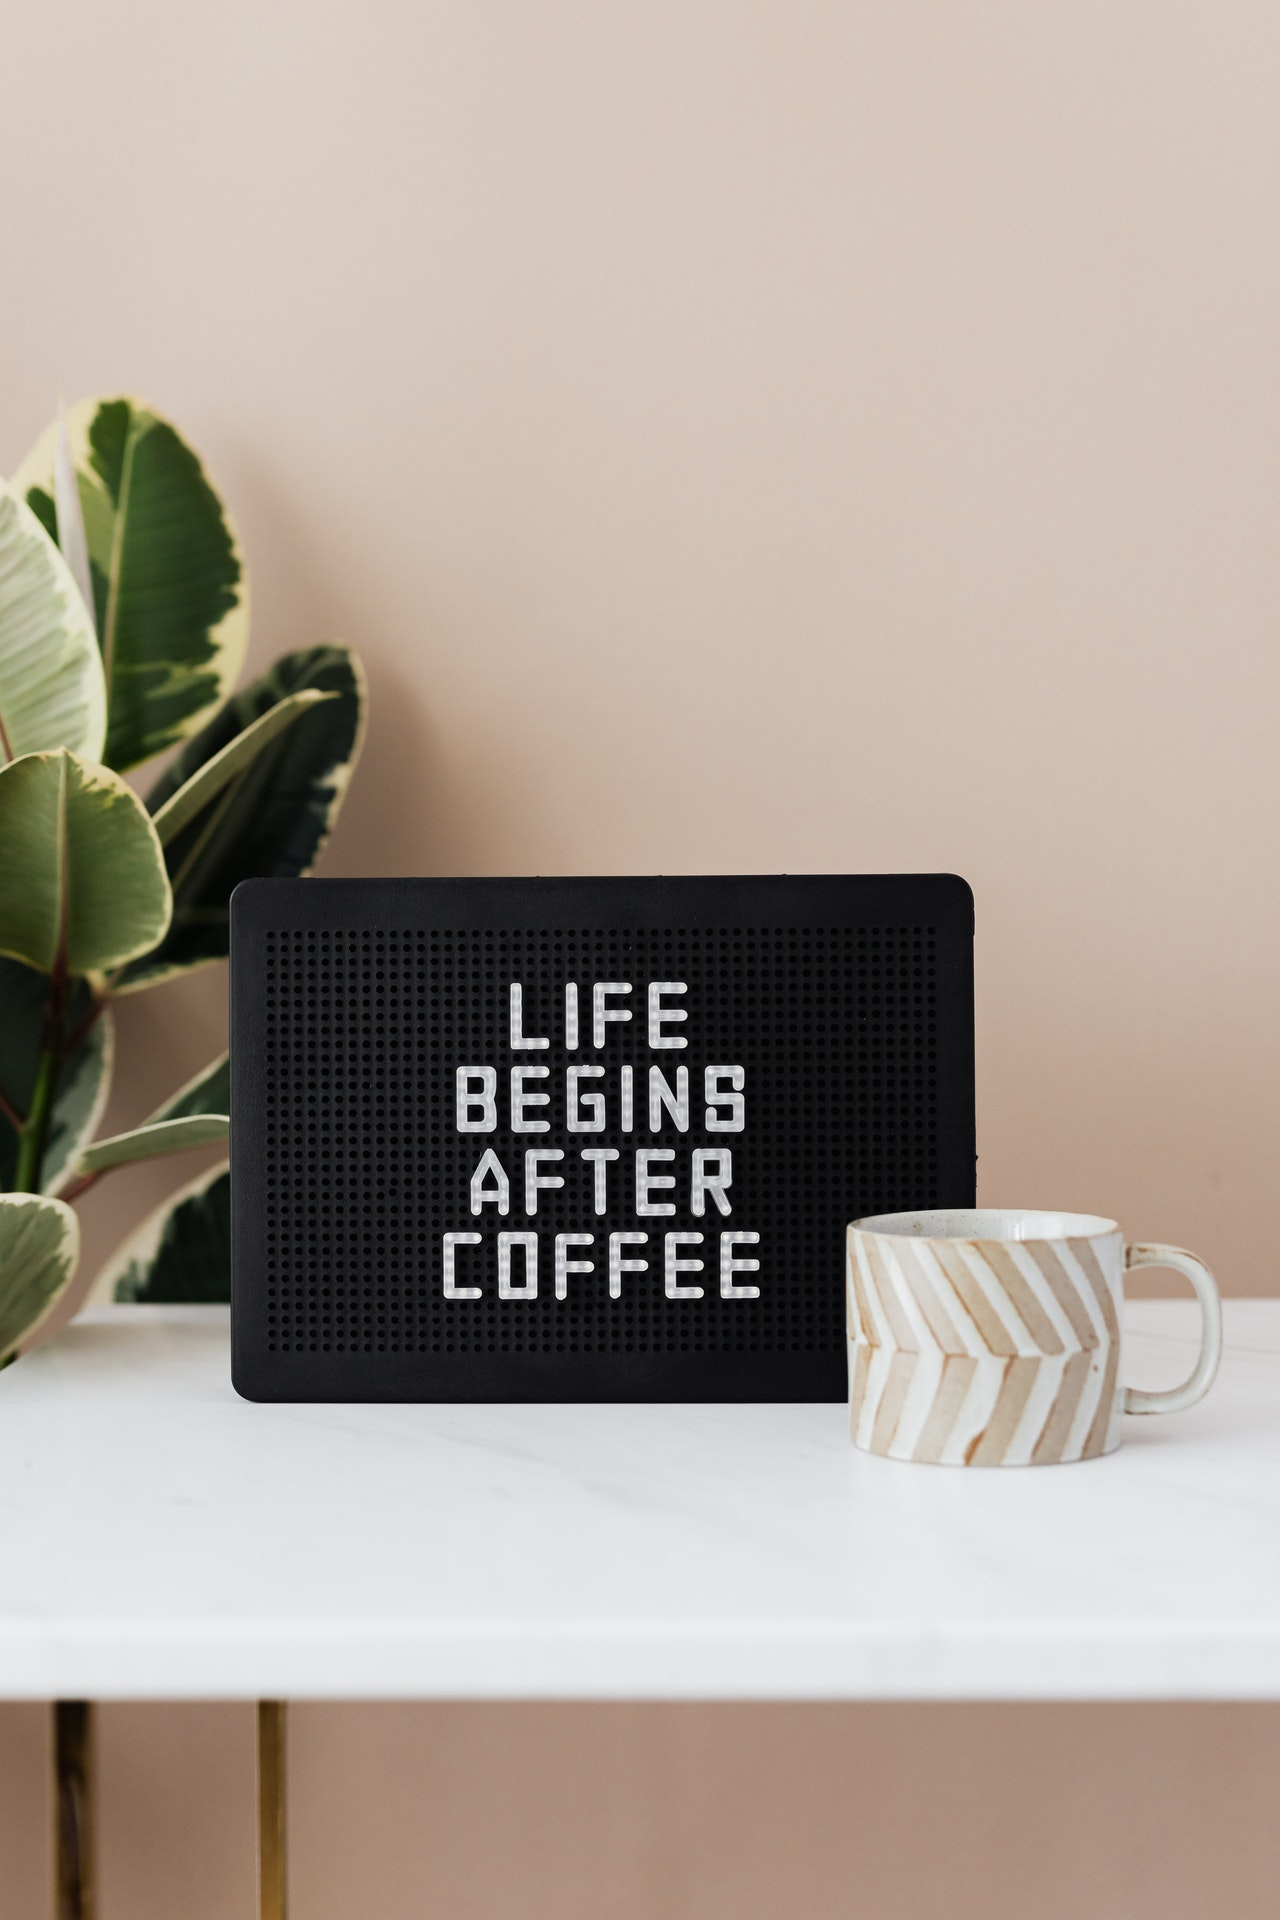 Life begins after coffee 인생은 커피로부터 시작